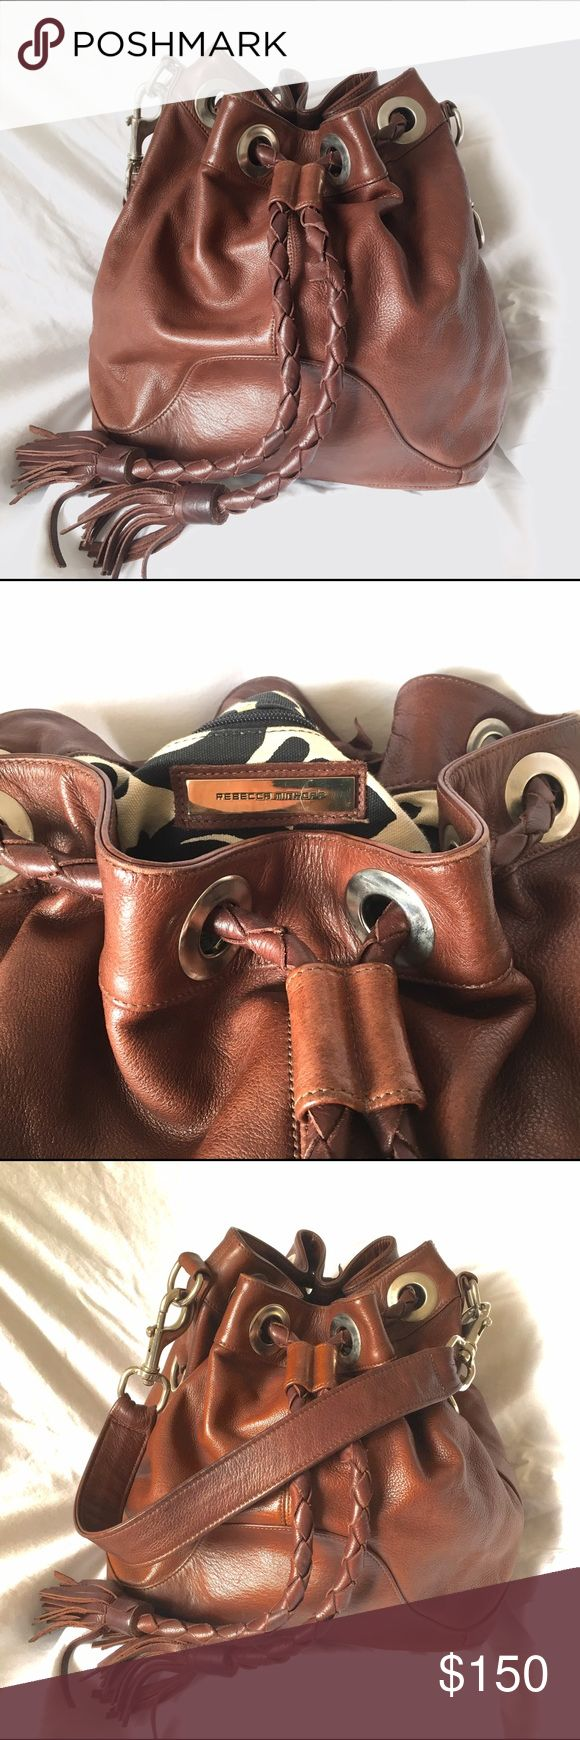 Rebecca Minkoff Bucket Bag Beautiful brown leather bucket bag with black and white fabric interior. Shoulder strap, 1 zip pocket, and 2 cell phone pockets inside. Slight wear but overall good condition. Rebecca Minkoff Bags Shoulder Bags